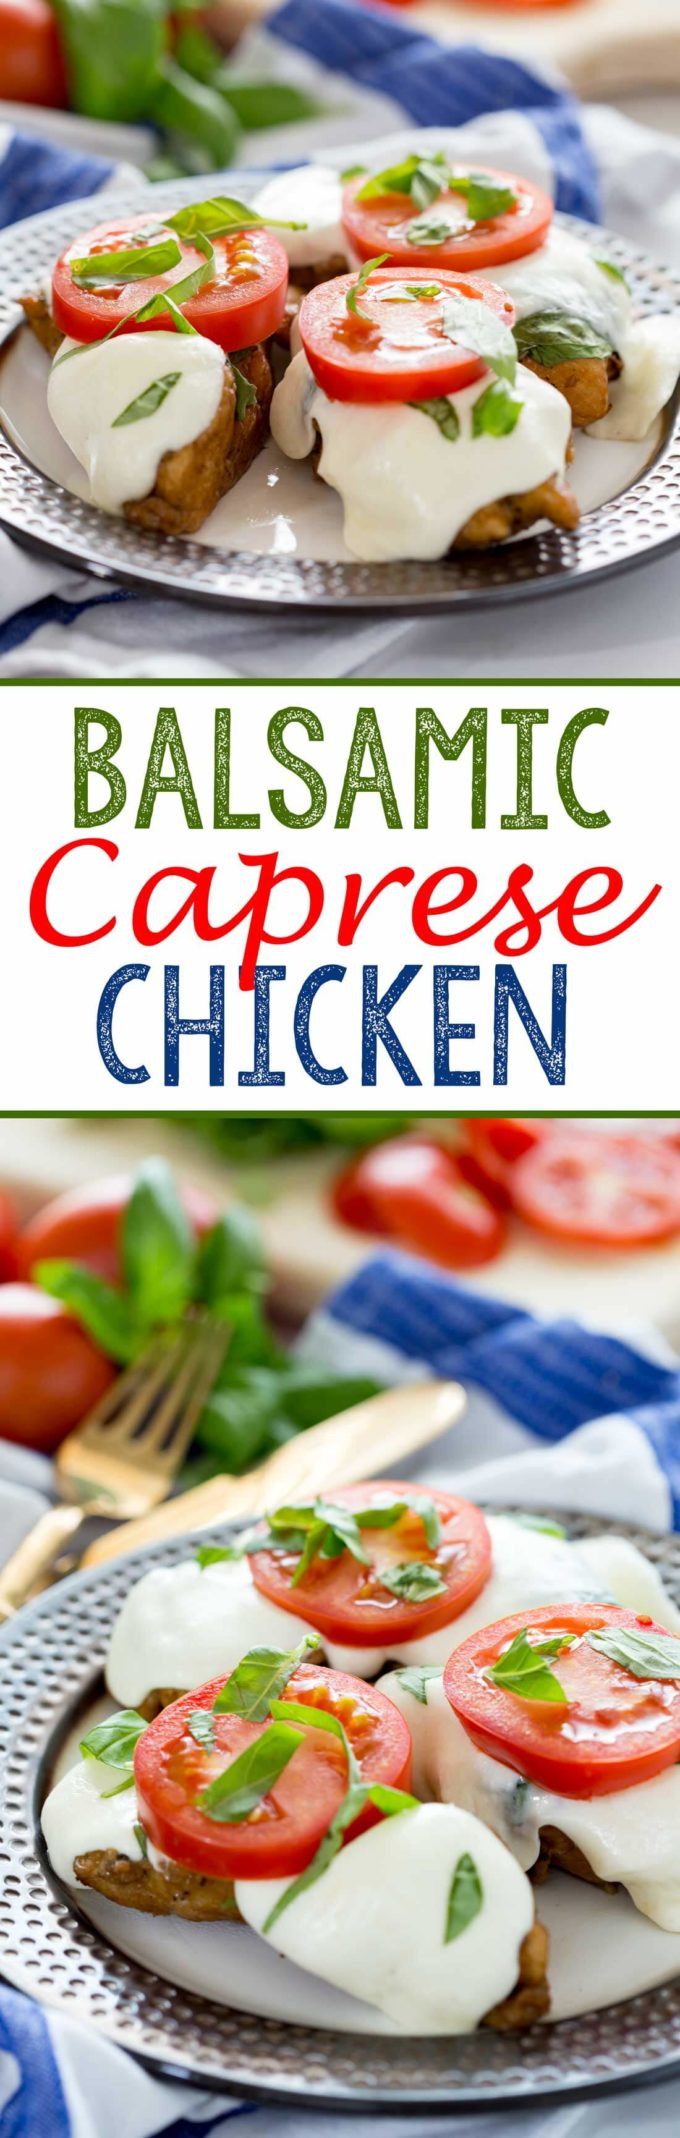 A layered balsamic chicken with a creamy layer of mozzarella, fresh basil, and tomatoes.